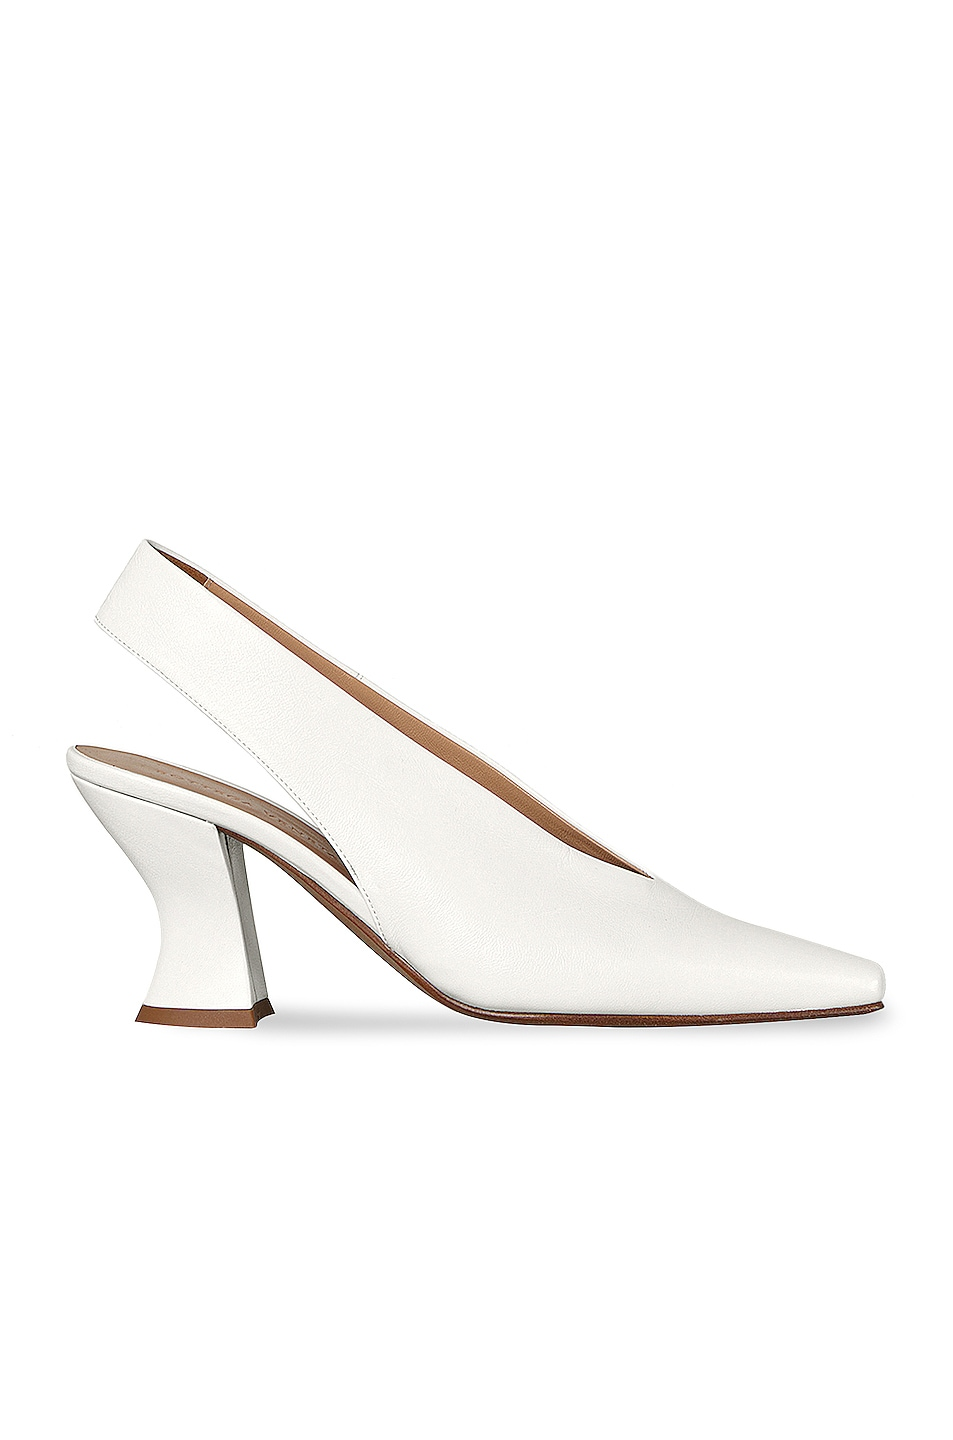 Image 1 of Bottega Veneta Almond Slingback Kitten Heels in Optic White